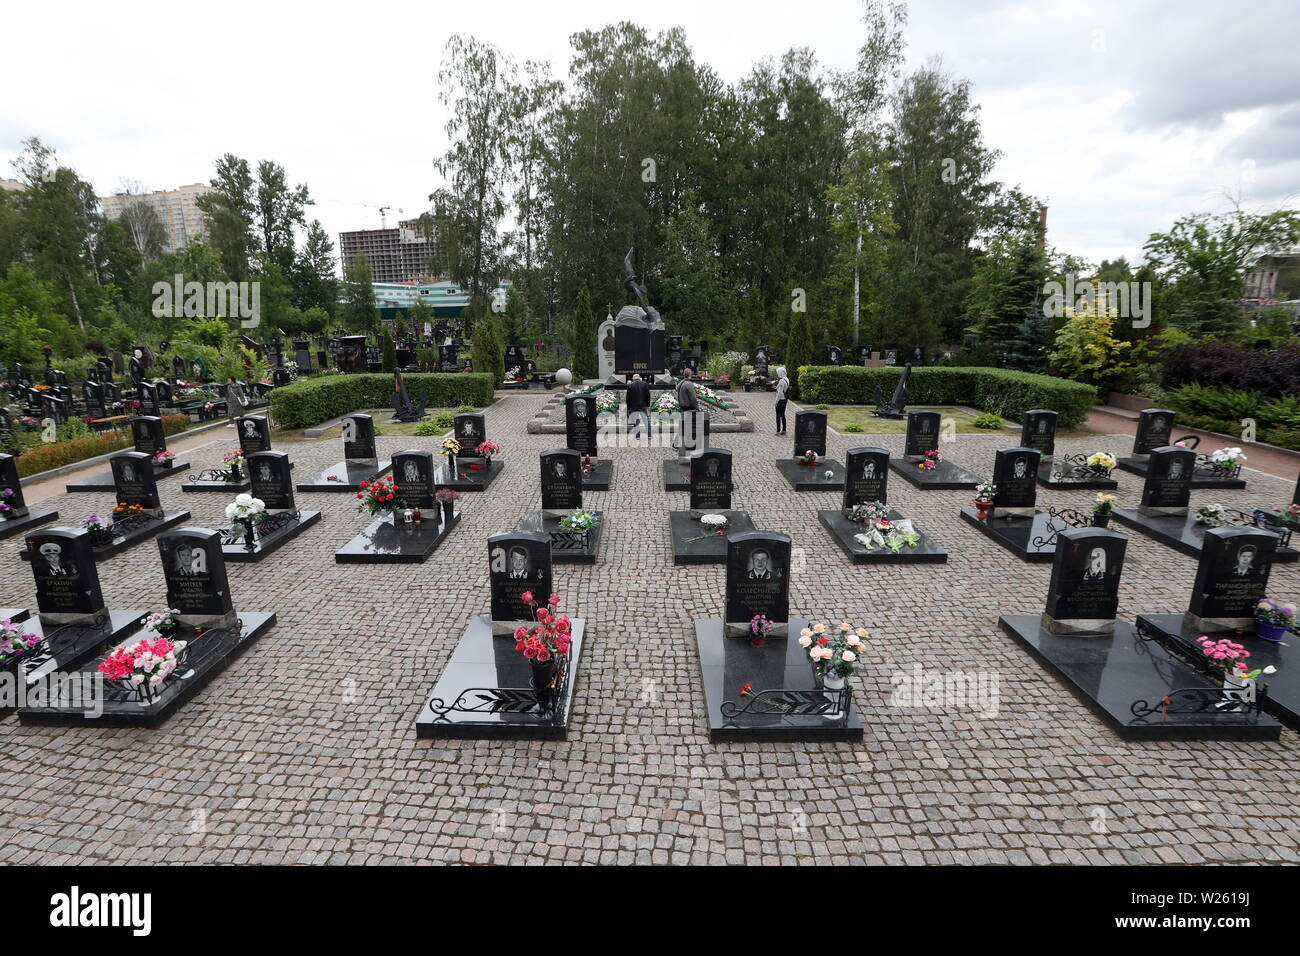 St Petersburg, Russia. 06th July, 2019. ST PETERSBURG, RUSSIA - JULY 6, 2019: The graves of the victims of the Kursk submarine disaster at the Serafimovskoye cemetery. The Kursk nuclear-powered submarine sank on August 12, 2000, in the Barents Sea waters during Russia's naval exercises, after an explosion onboard; all 118 crew members died. Peter Kovalev/TASS Credit: ITAR-TASS News Agency/Alamy Live News - Stock Image